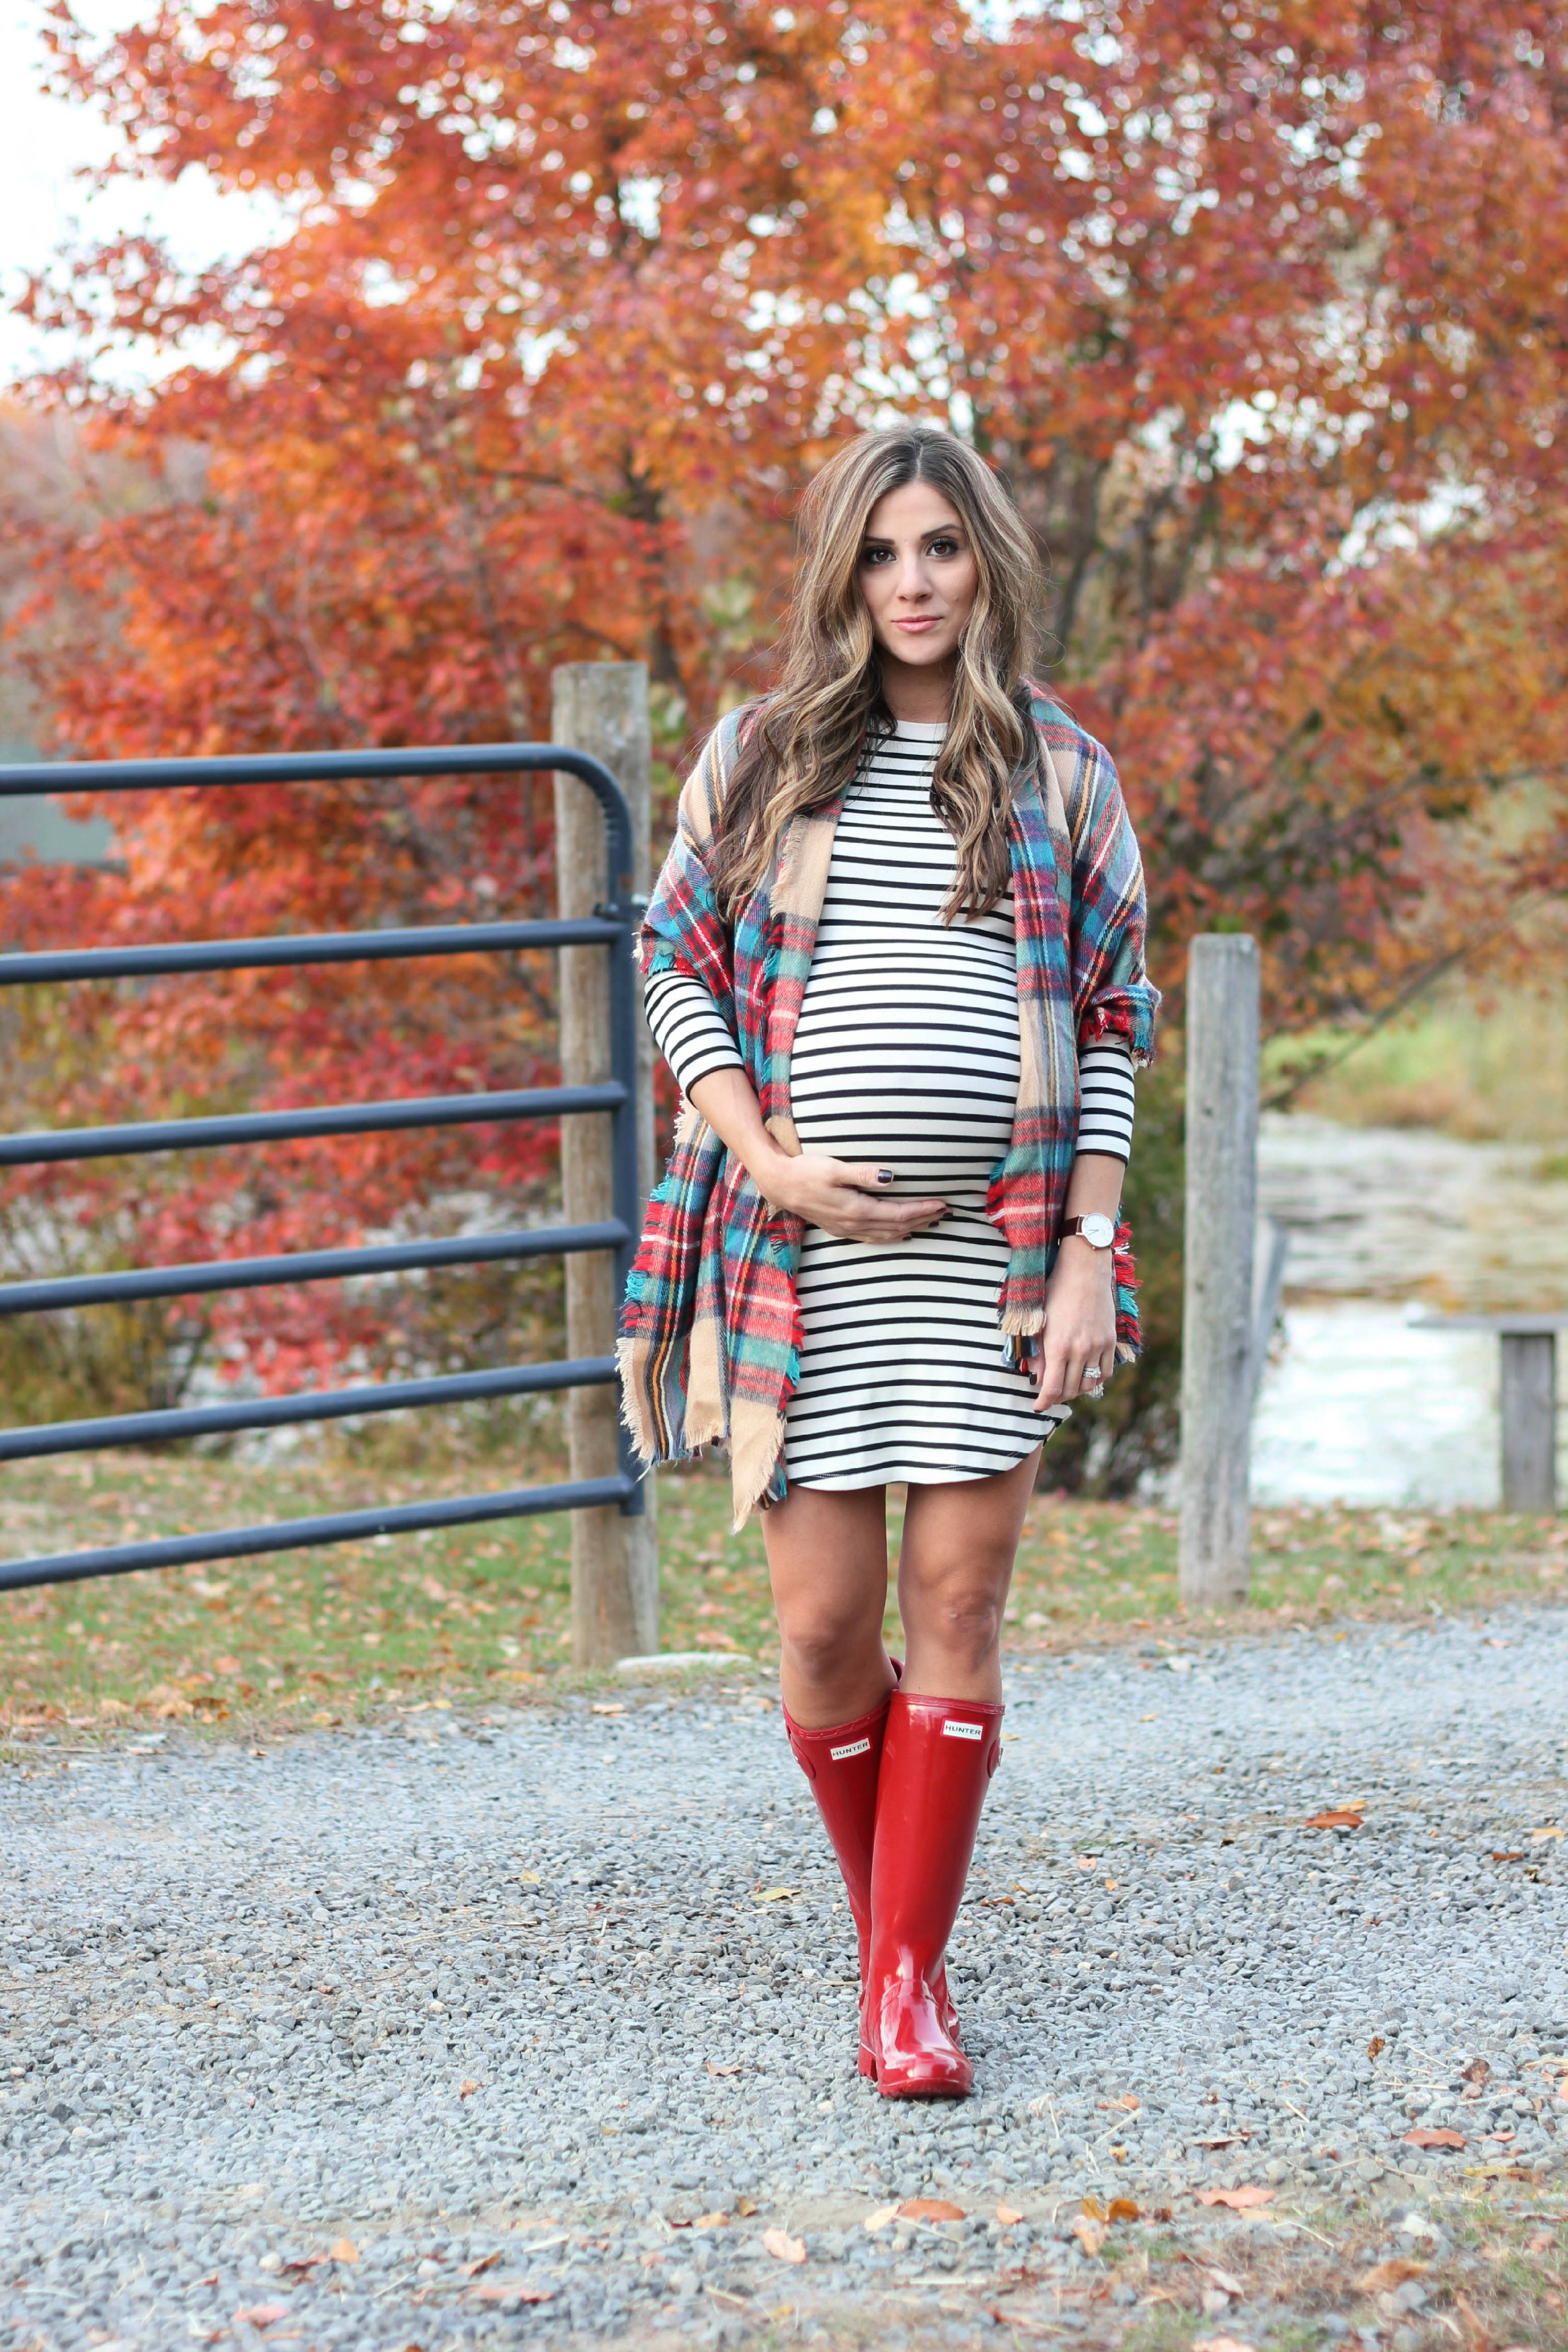 Phenomenal Stylish Fall Fashion Outfits